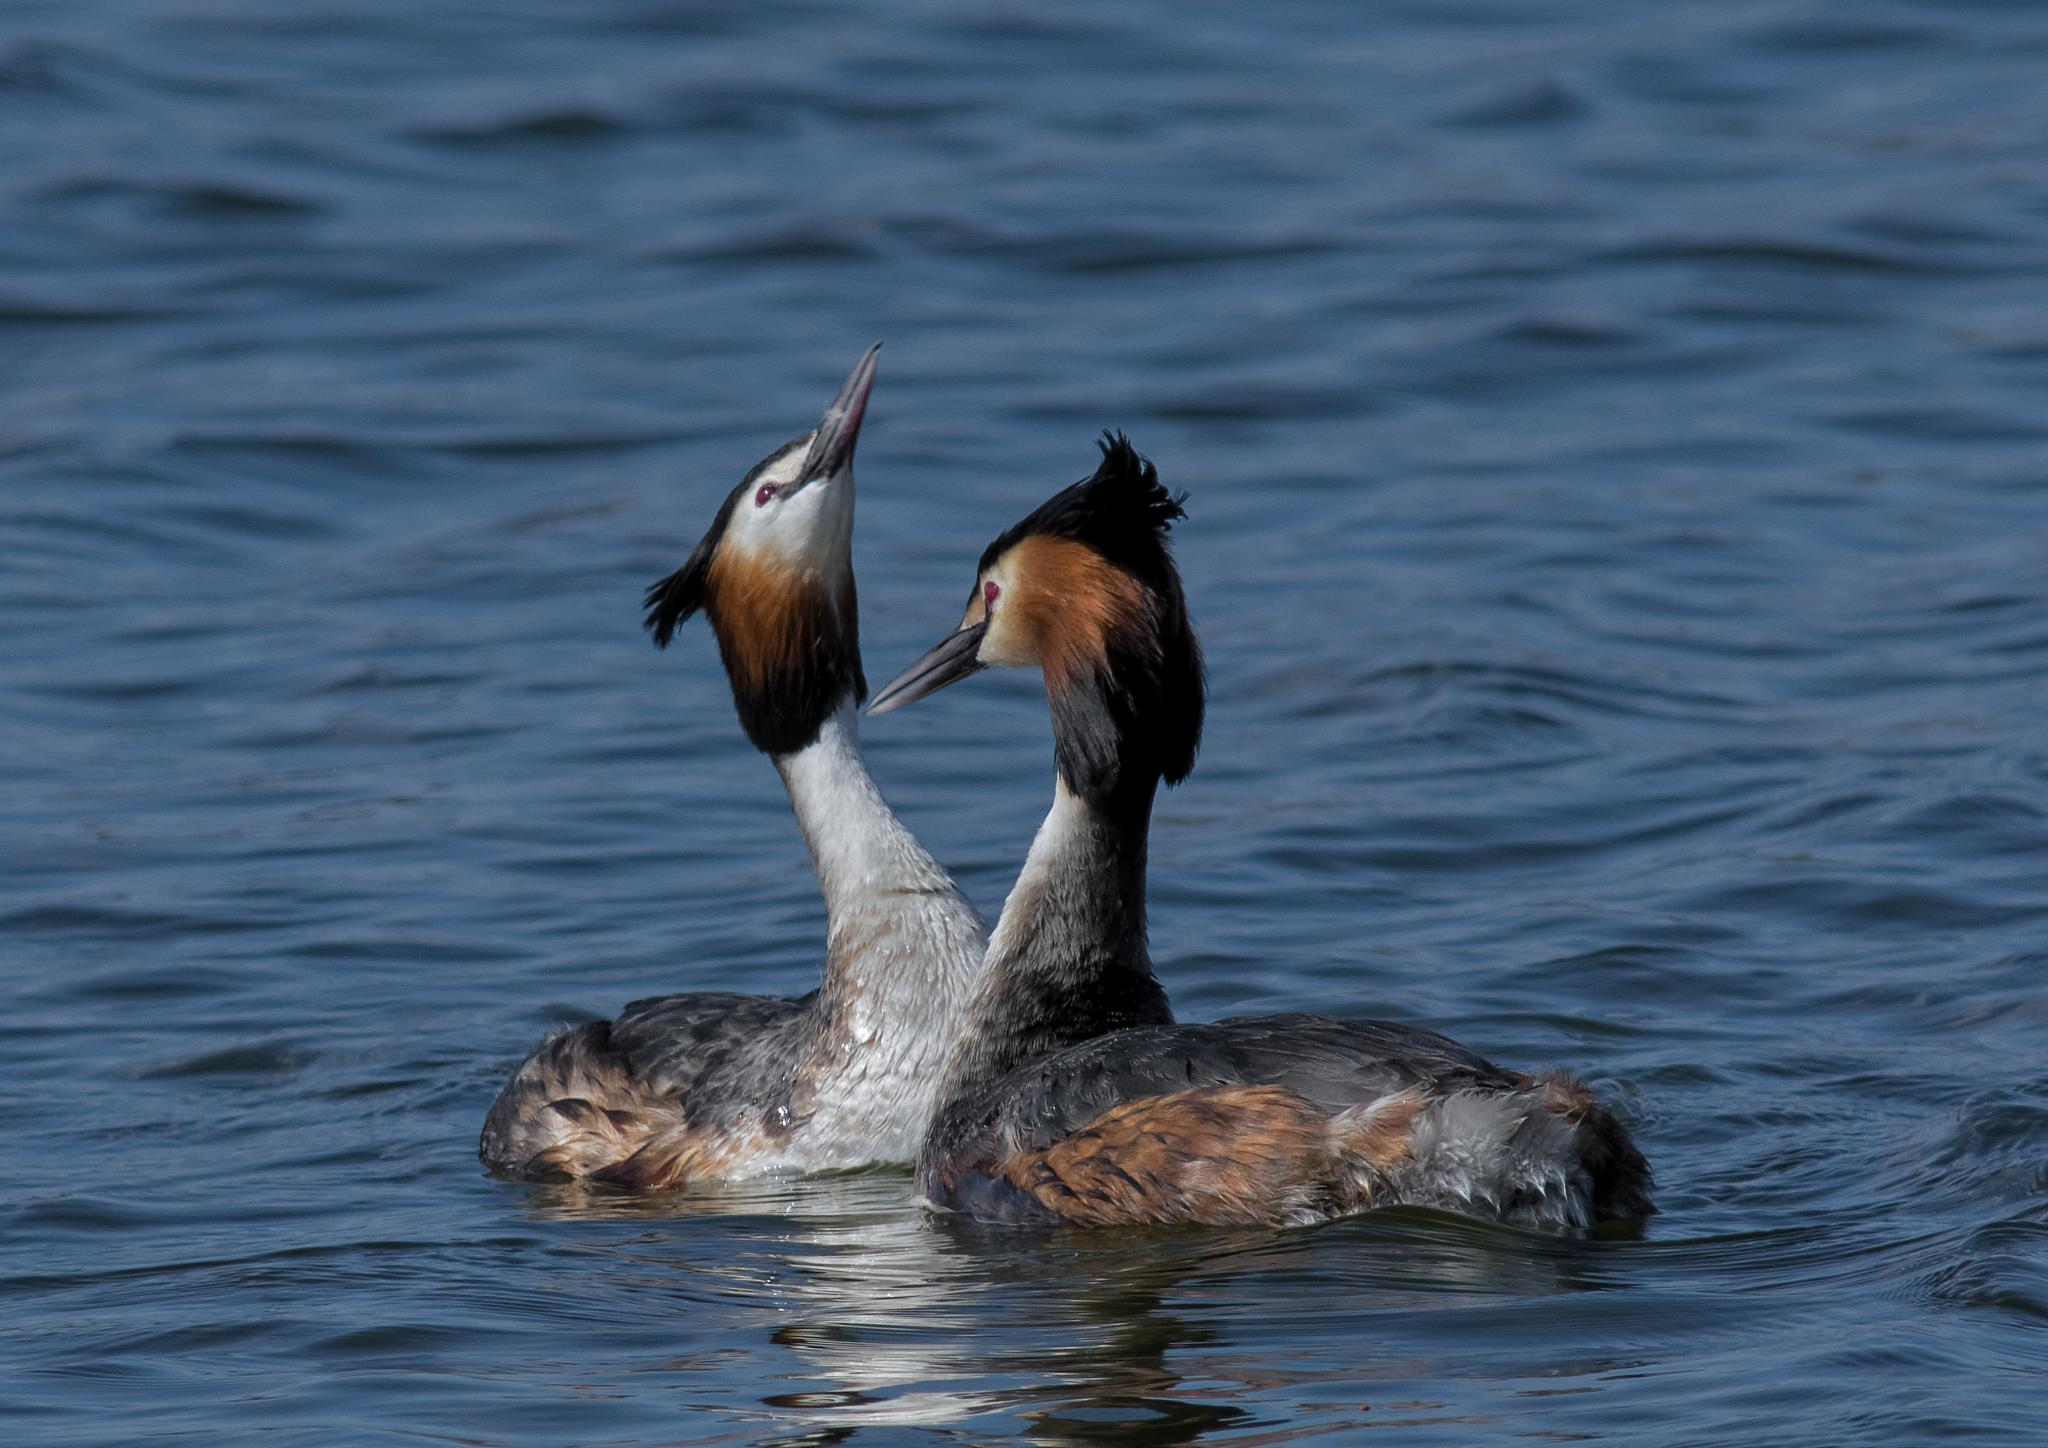 Great crested grebe by ole nørholm